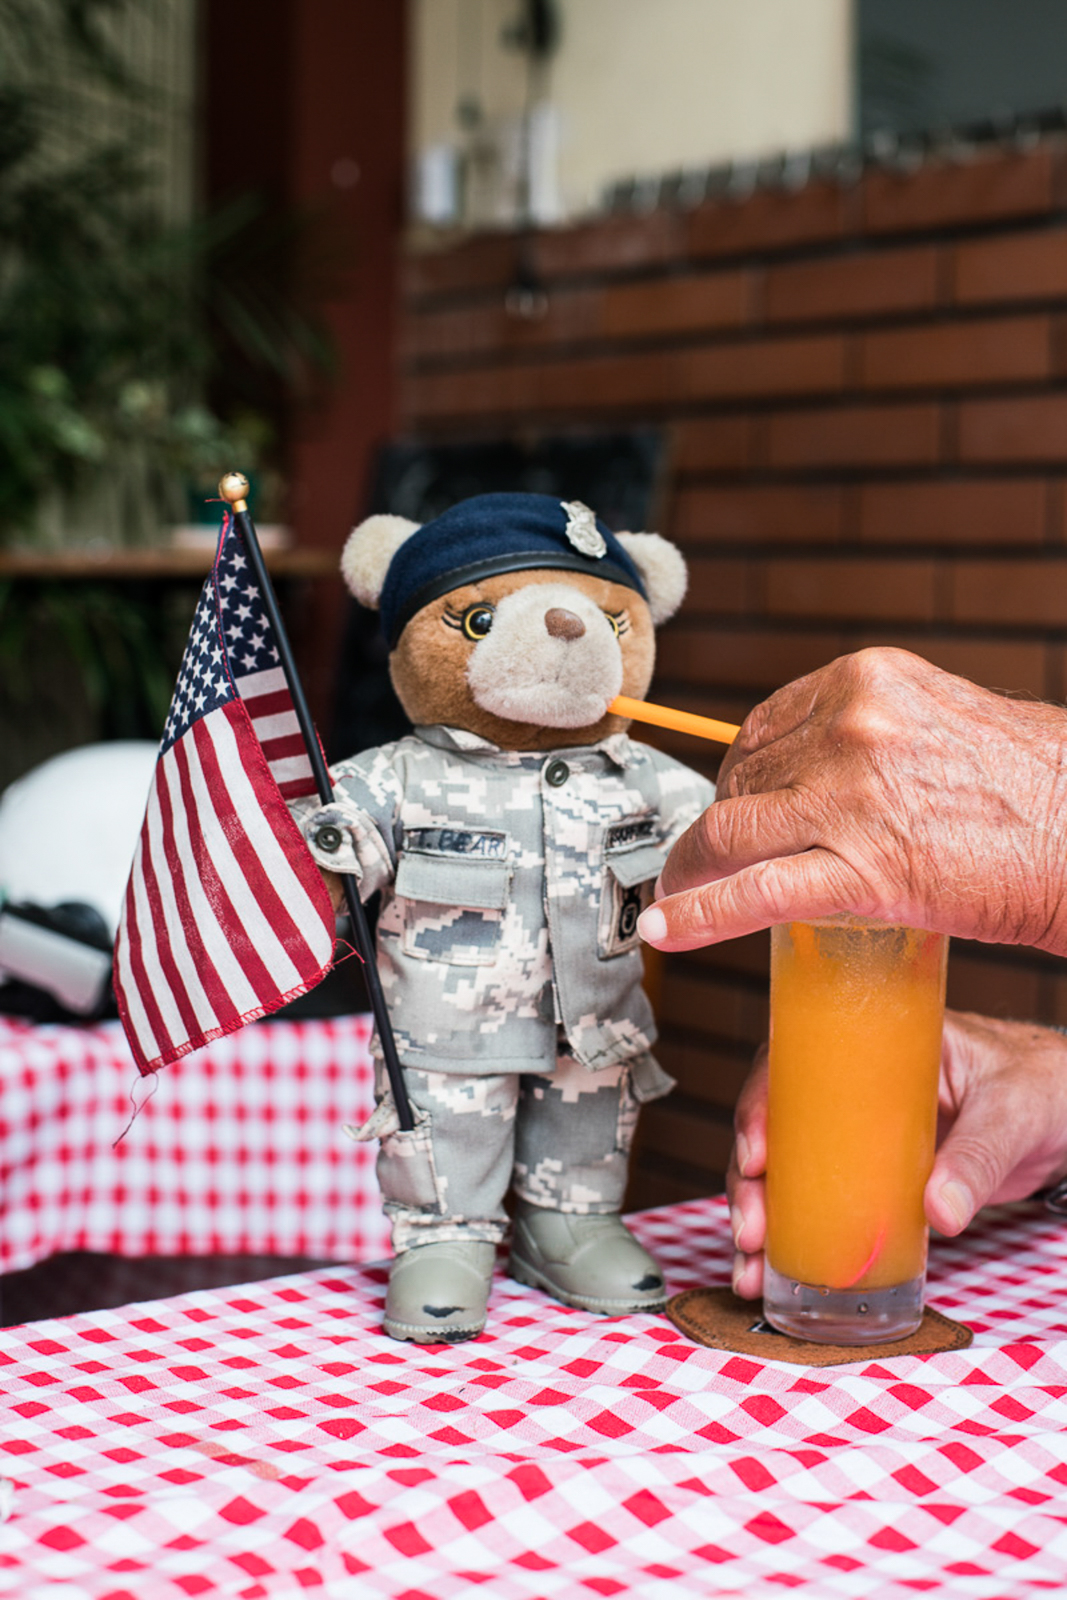 Western food and fast food give Bill a sense of security. Colonel T. Bear not only accompanies him to the restaurant but also on his travels. During their journeys, he is seated in front of the small windshield of his scooter.